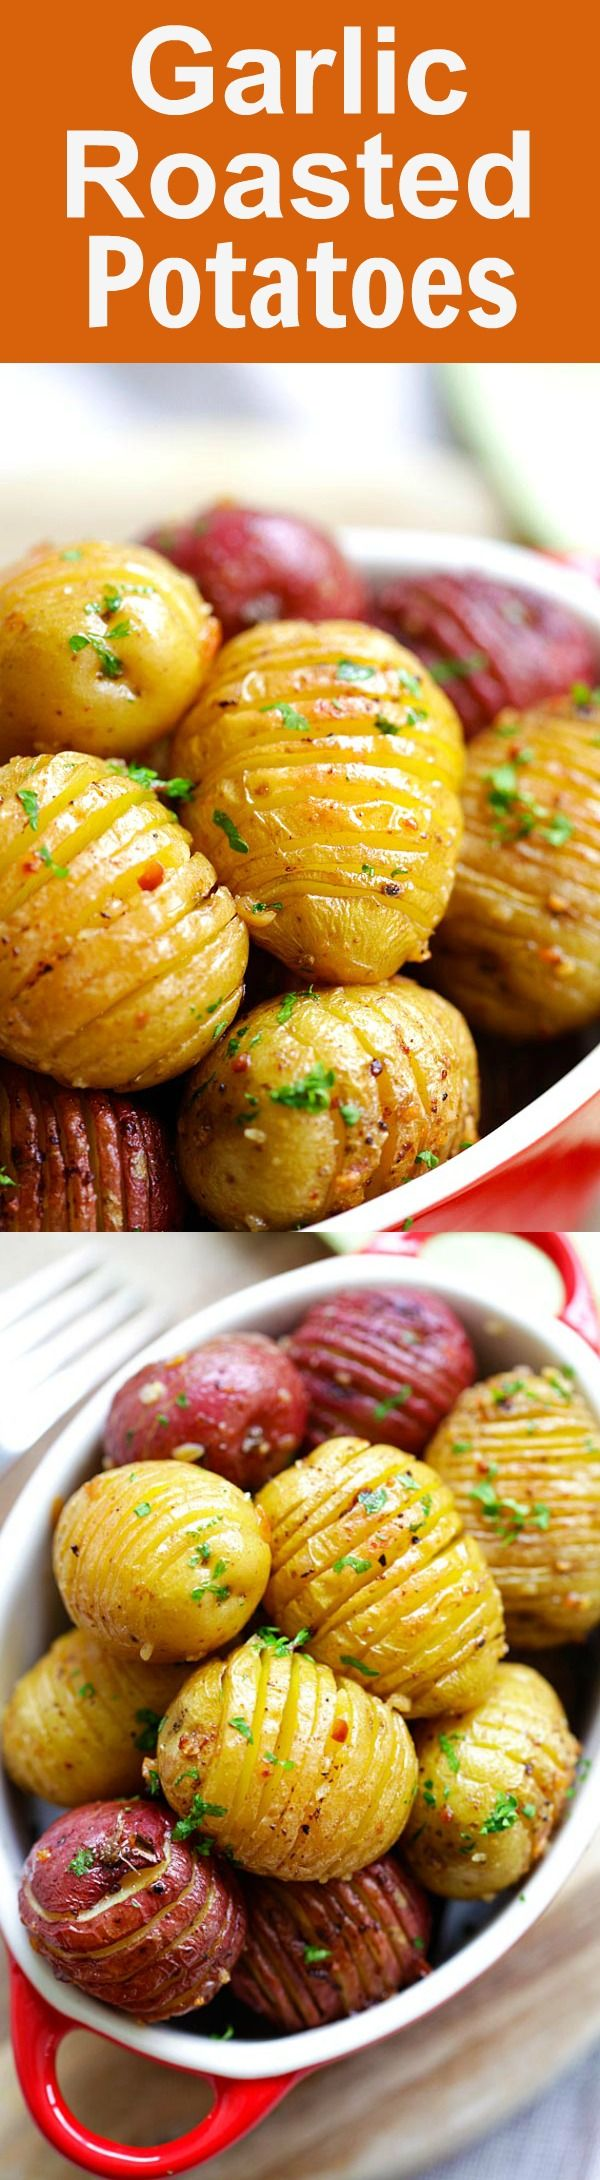 Garlic Roasted Potatoes – best and easiest roasted potatoes with garlic, butter and olive oil. 10 mins prep and 40 mins in the oven | rasamalaysia.com